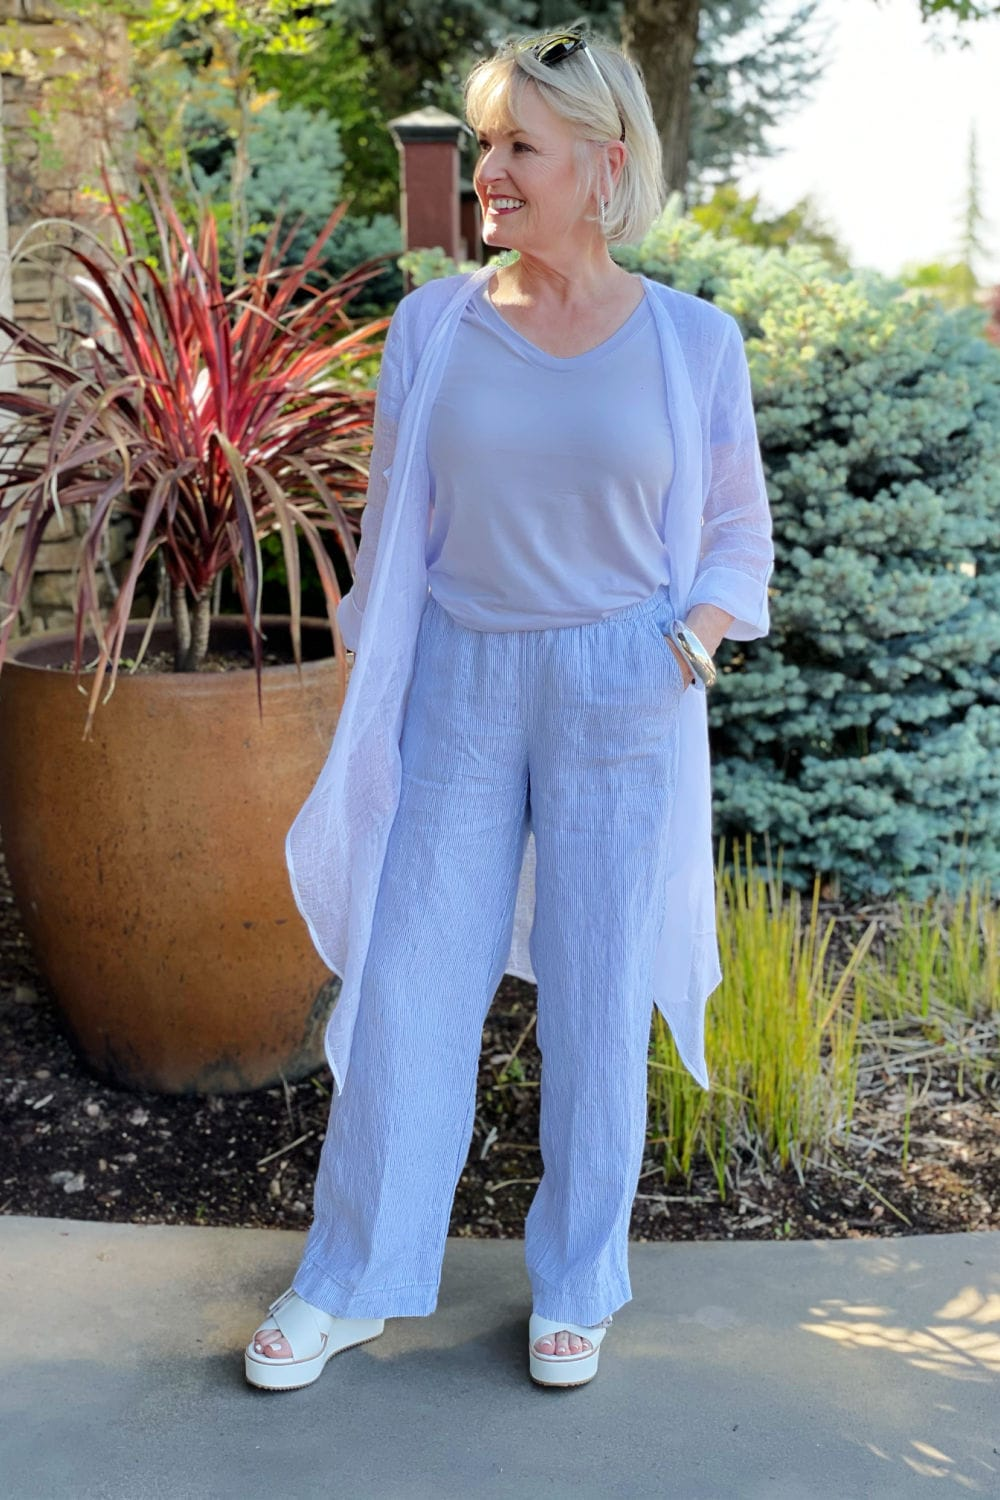 jennifer of a well styled life wearing purple tee, linen cardigan and line pants in front of gate